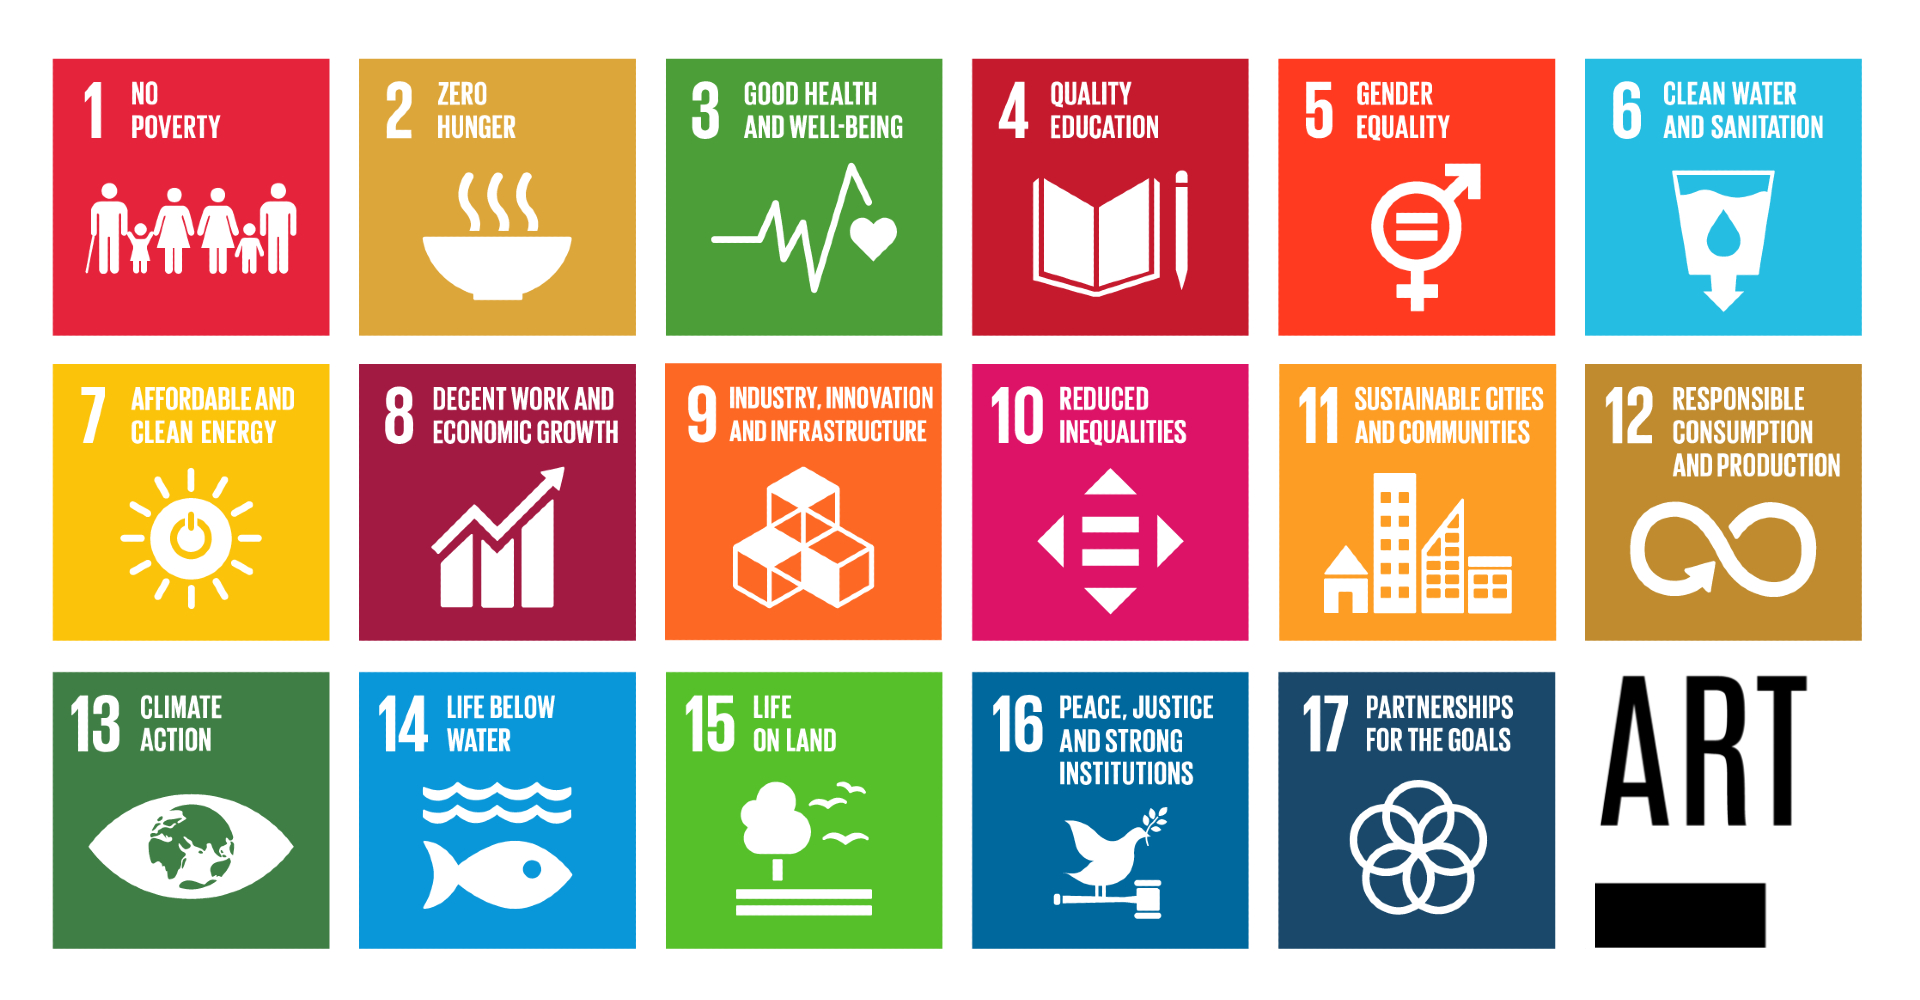 An image of the 17 sustainable development goals with art in the 18th square